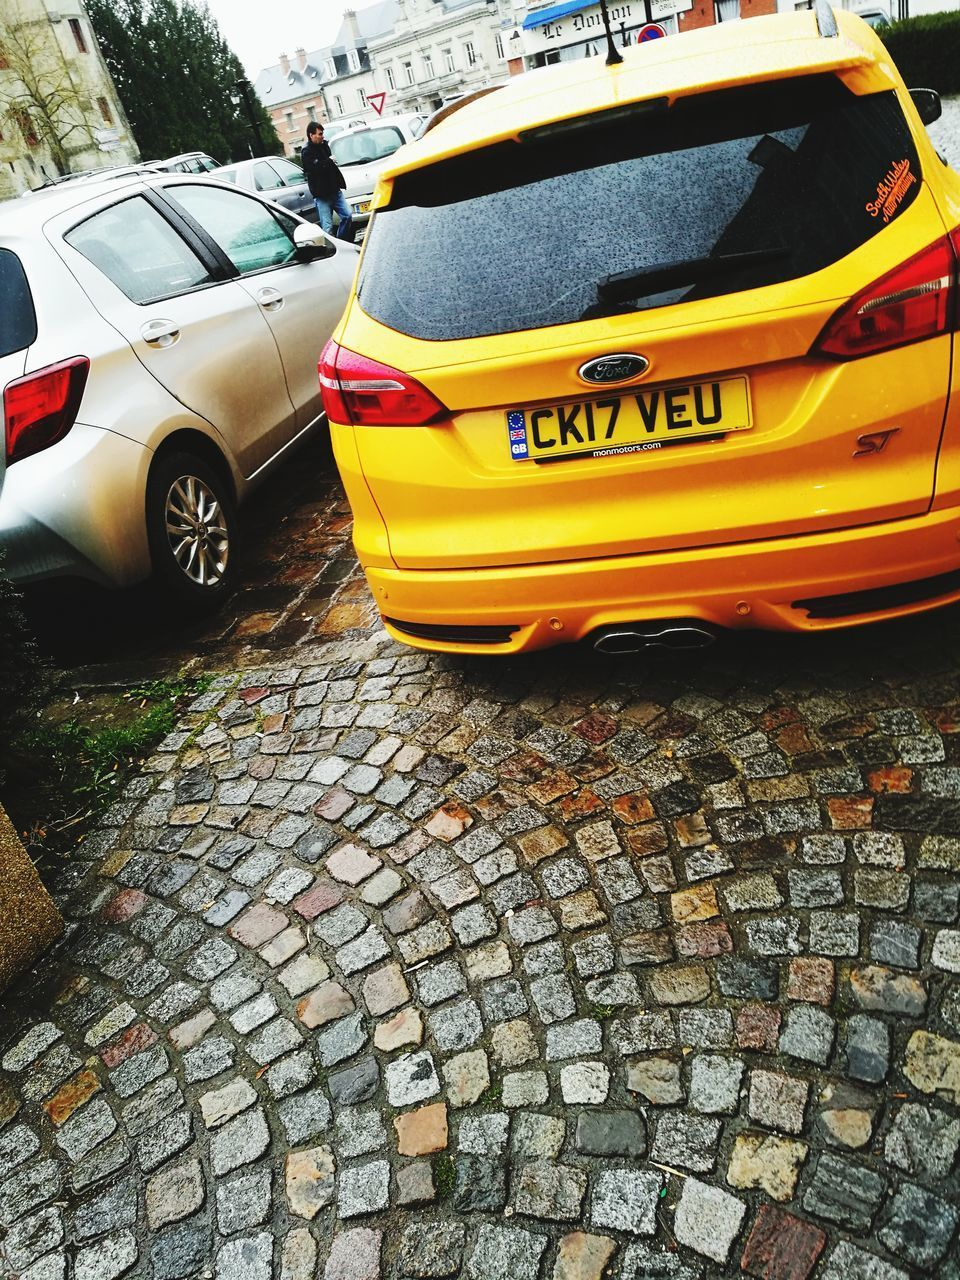 car, mode of transportation, transportation, motor vehicle, street, city, land vehicle, yellow, day, cobblestone, architecture, taxi, text, outdoors, no people, stone, road, footpath, built structure, paving stone